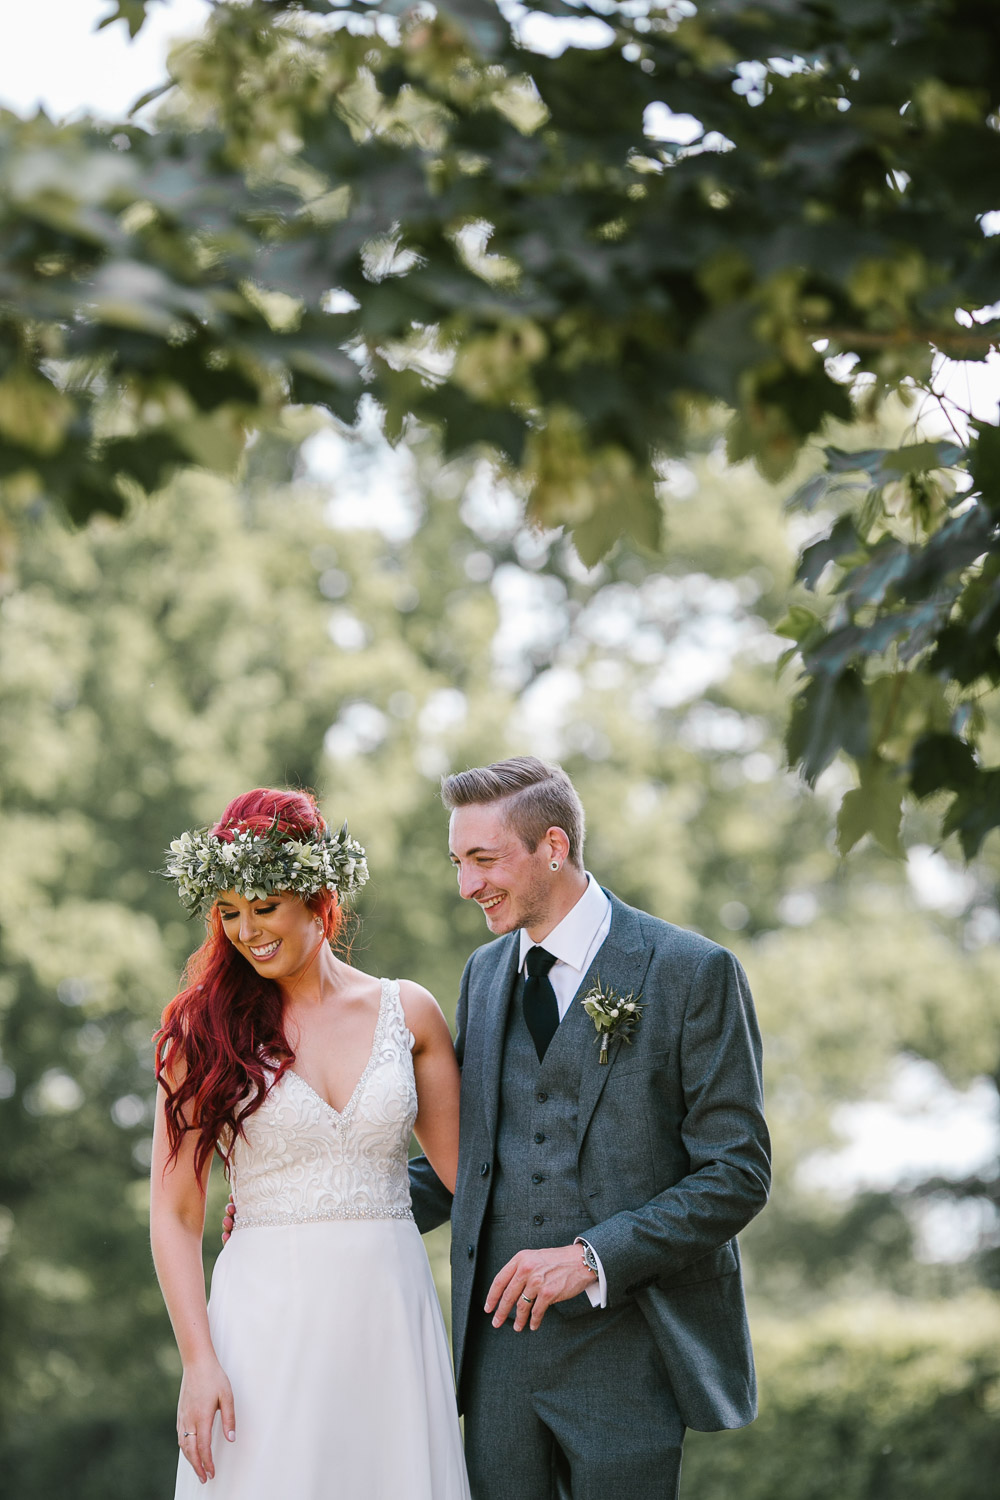 The Red Barn Lingfield, Flower crown, Danielle Victoria Photography-86.jpg